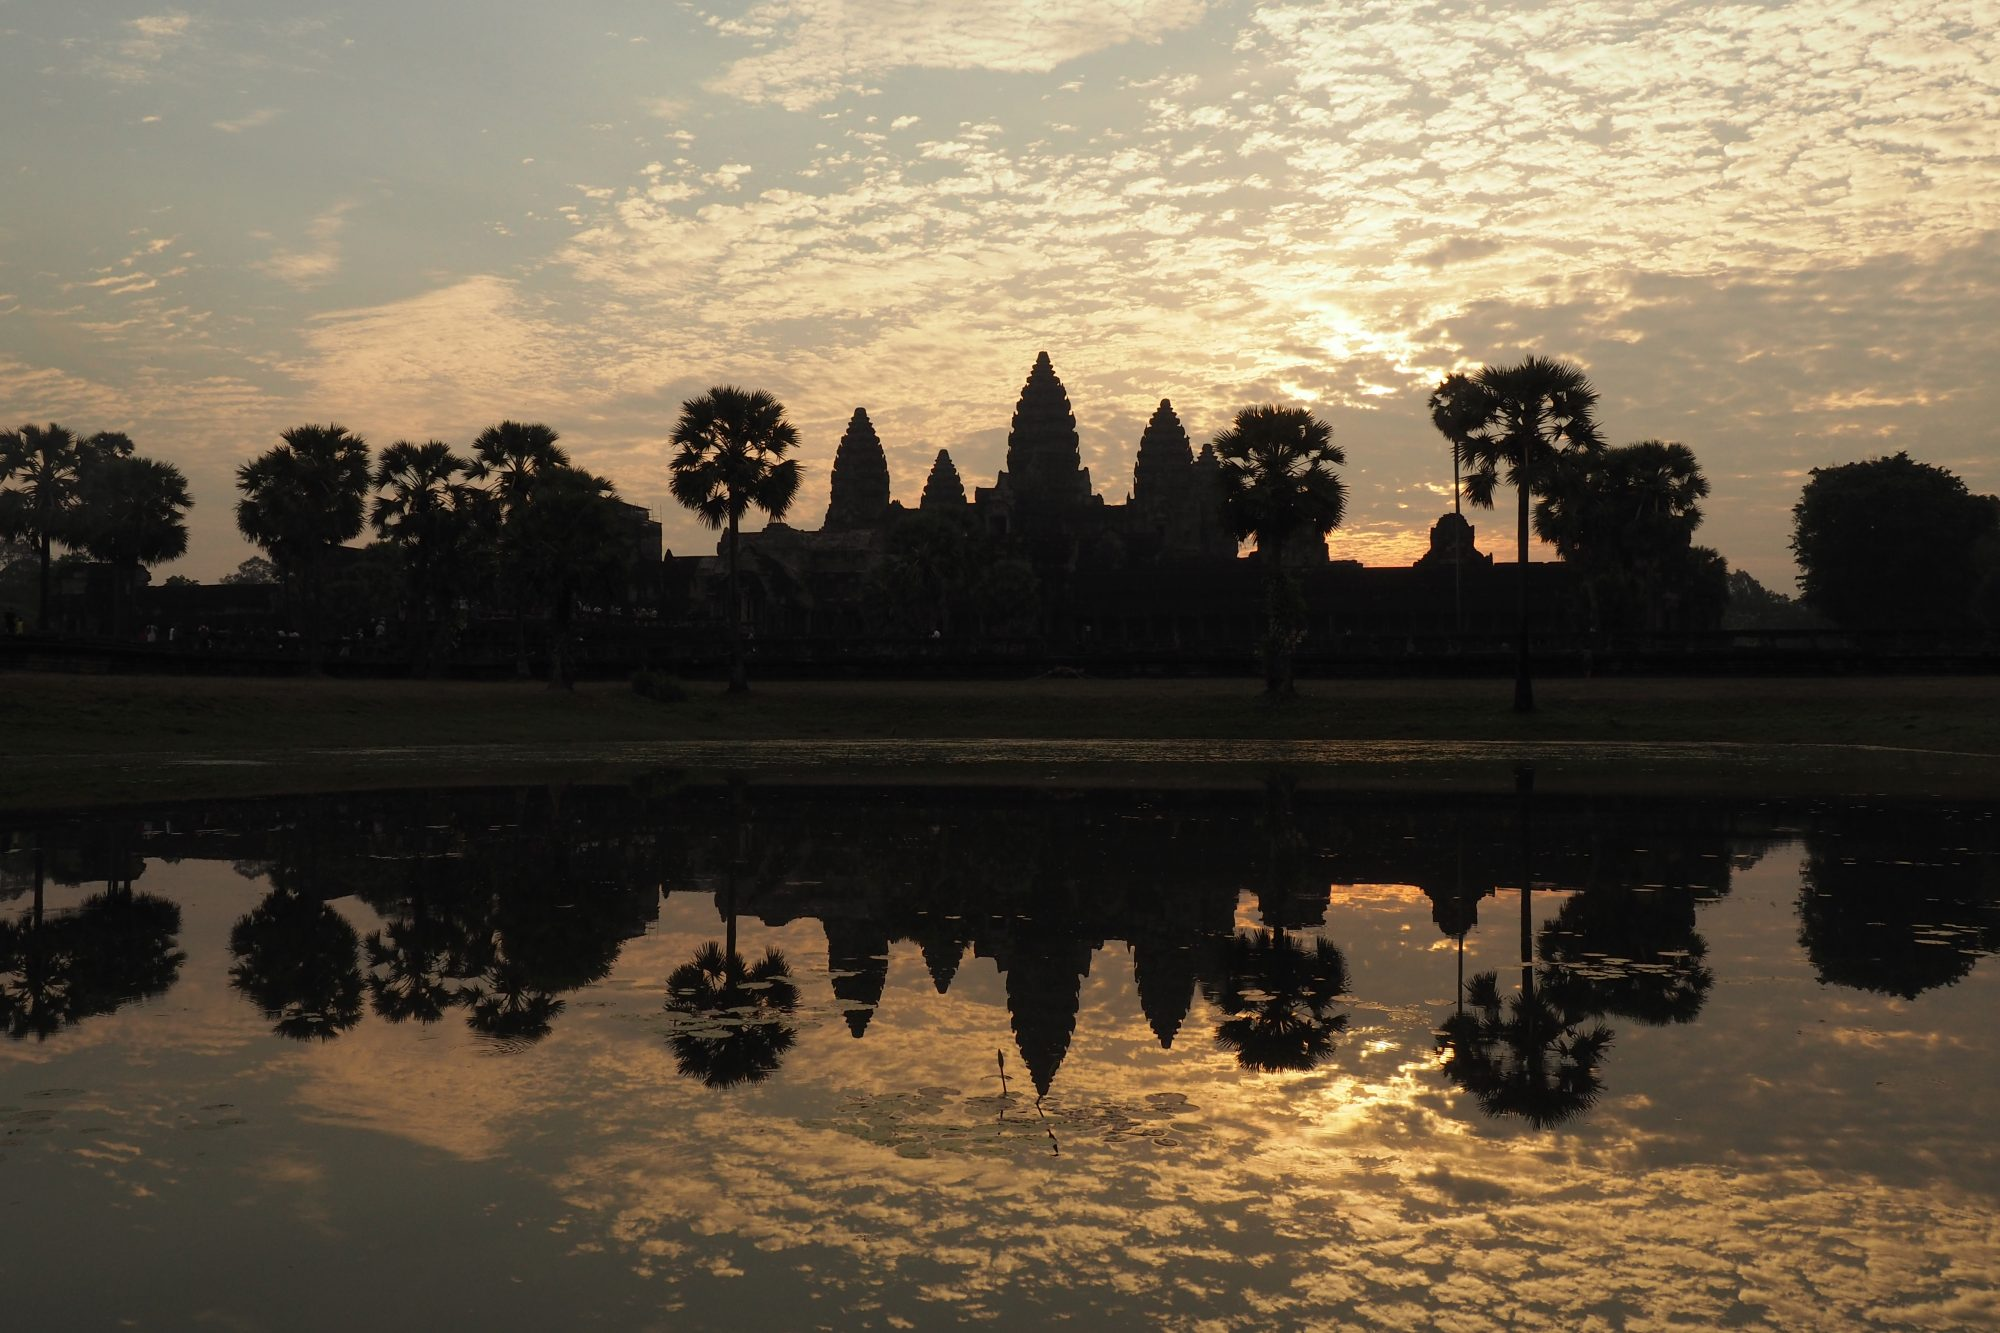 Angkor Wat at sunrise. The temple was built by the King